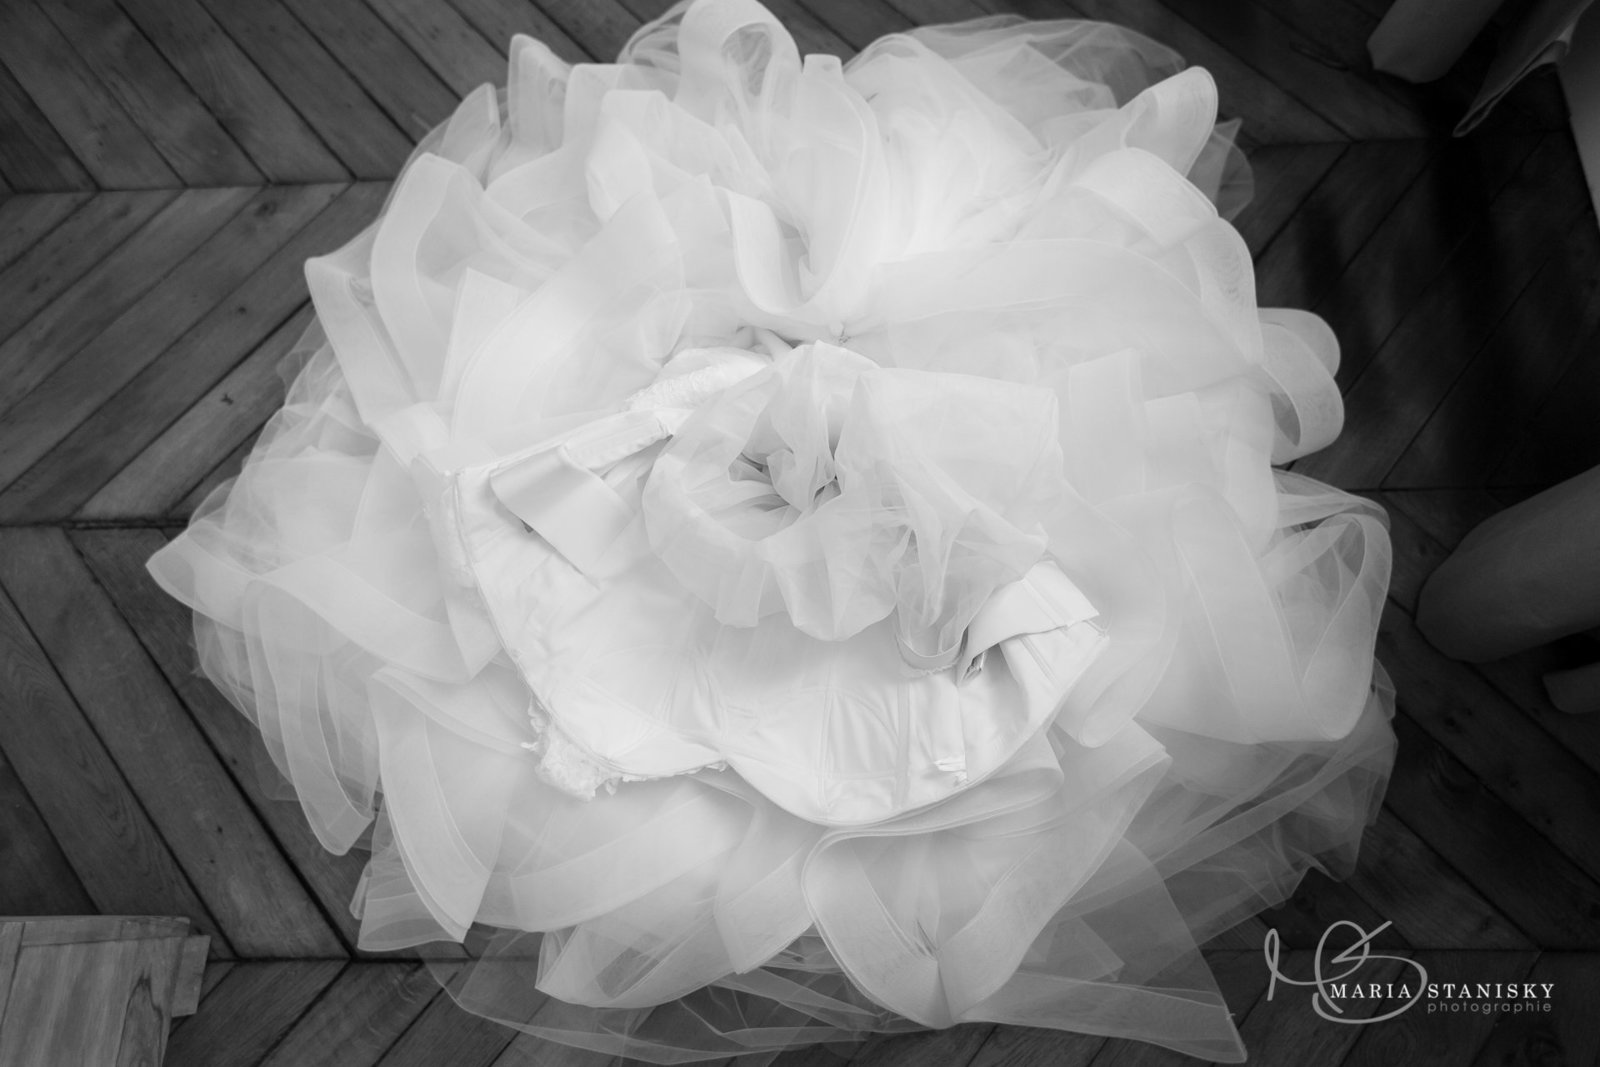 Mariage_Celine&Axel_11072015-0143-2